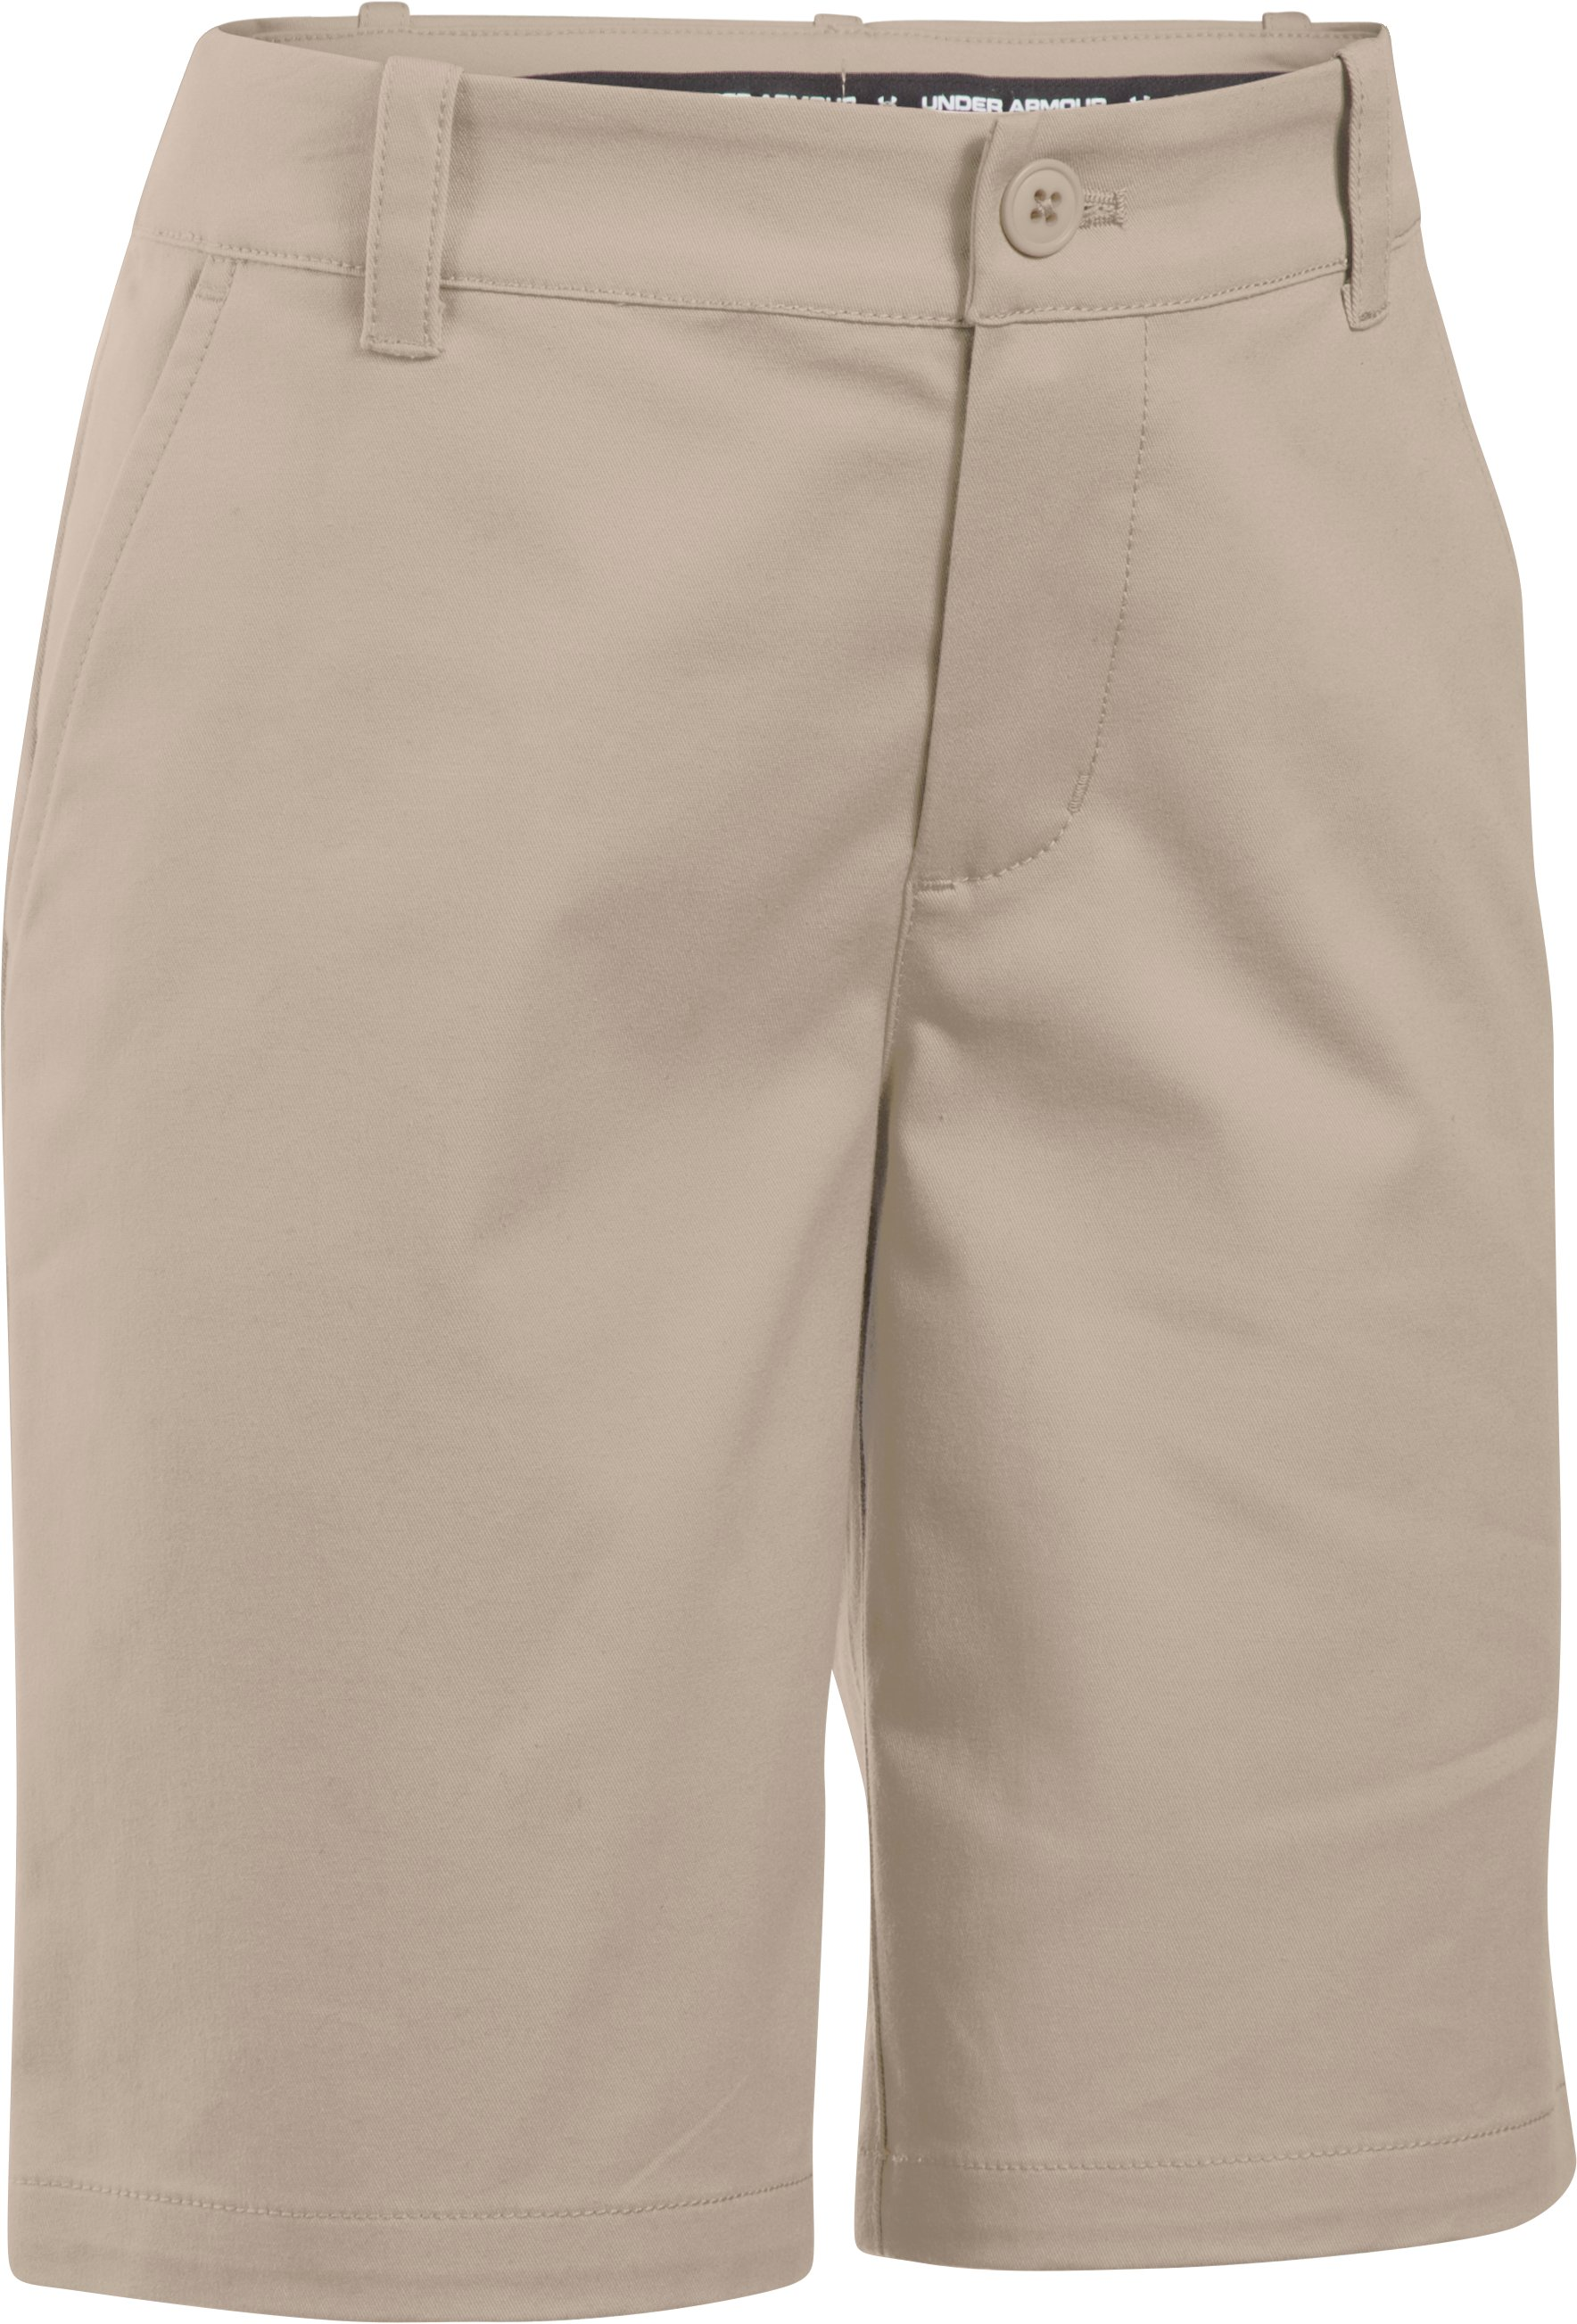 Girls' UA Uniform Chino Shorts – Plus Size, Desert Sand,